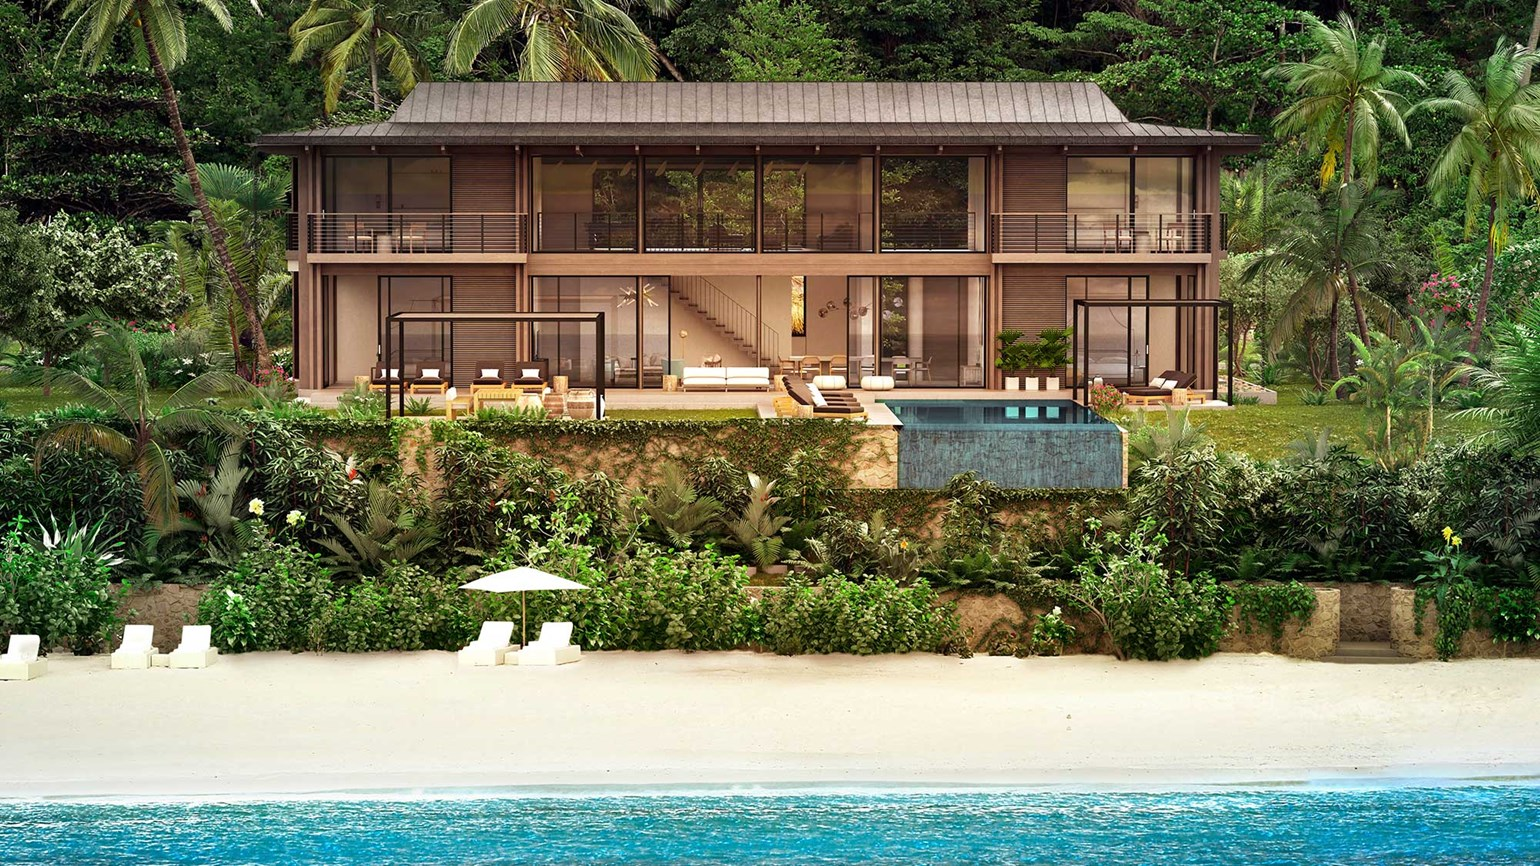 Four-bedroom homes now available at Viceroy resort in St. Lucia